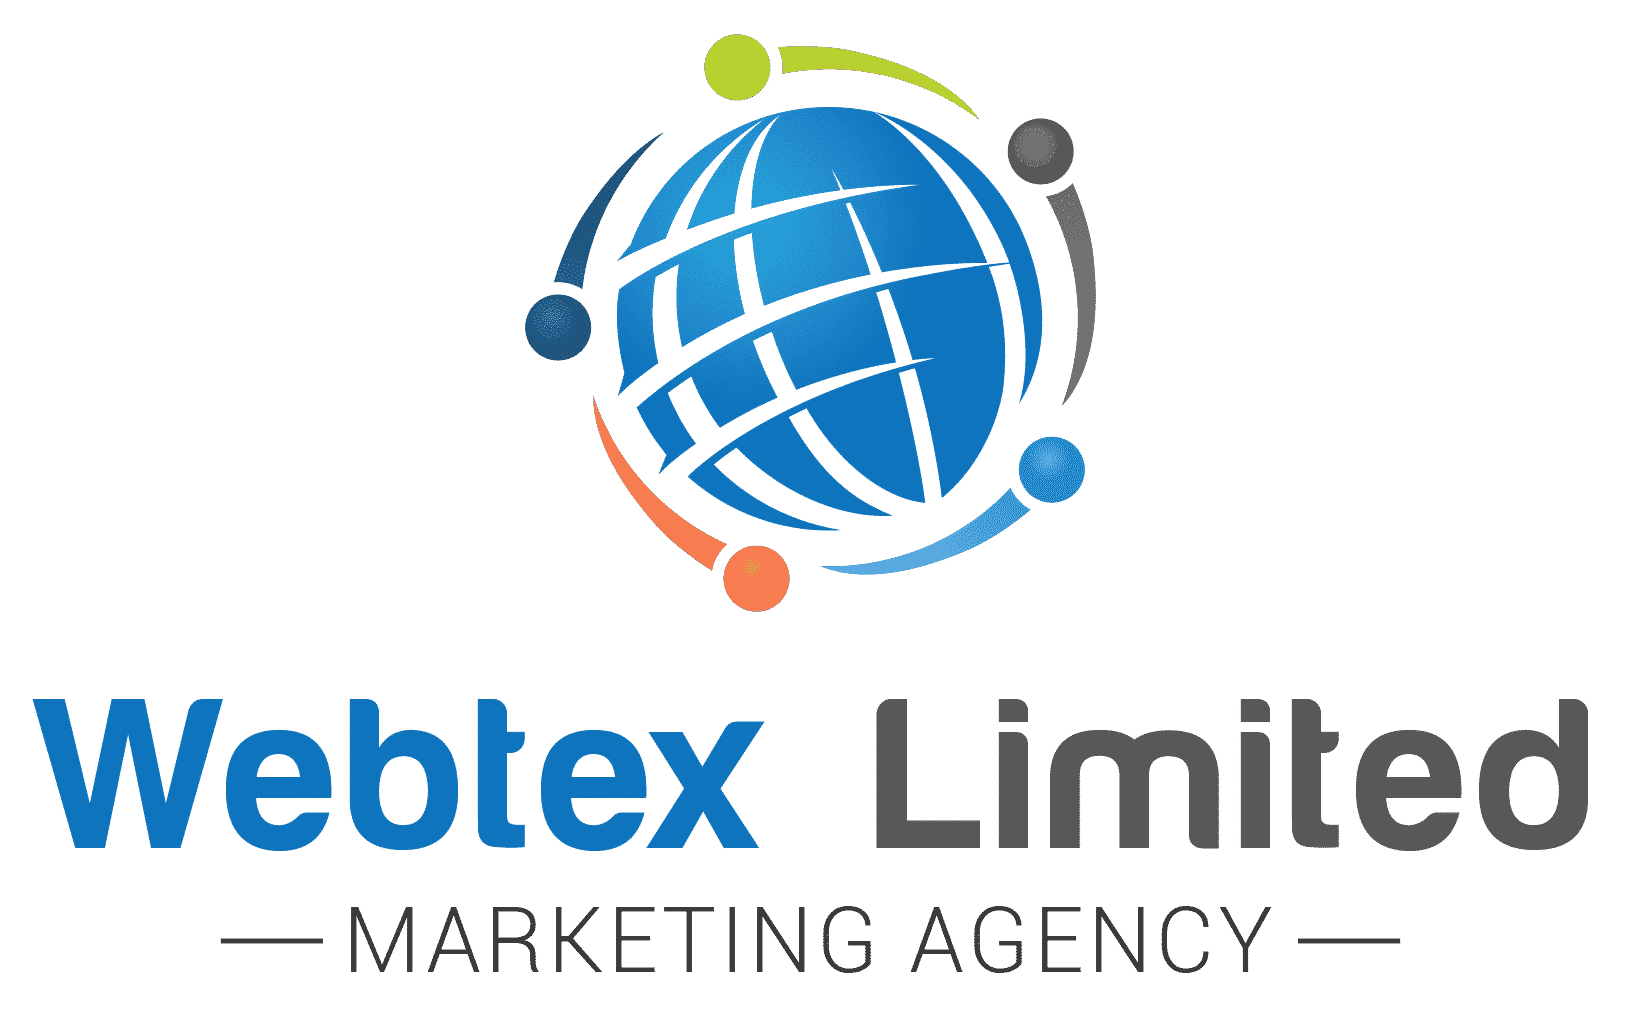 Webtex Limited